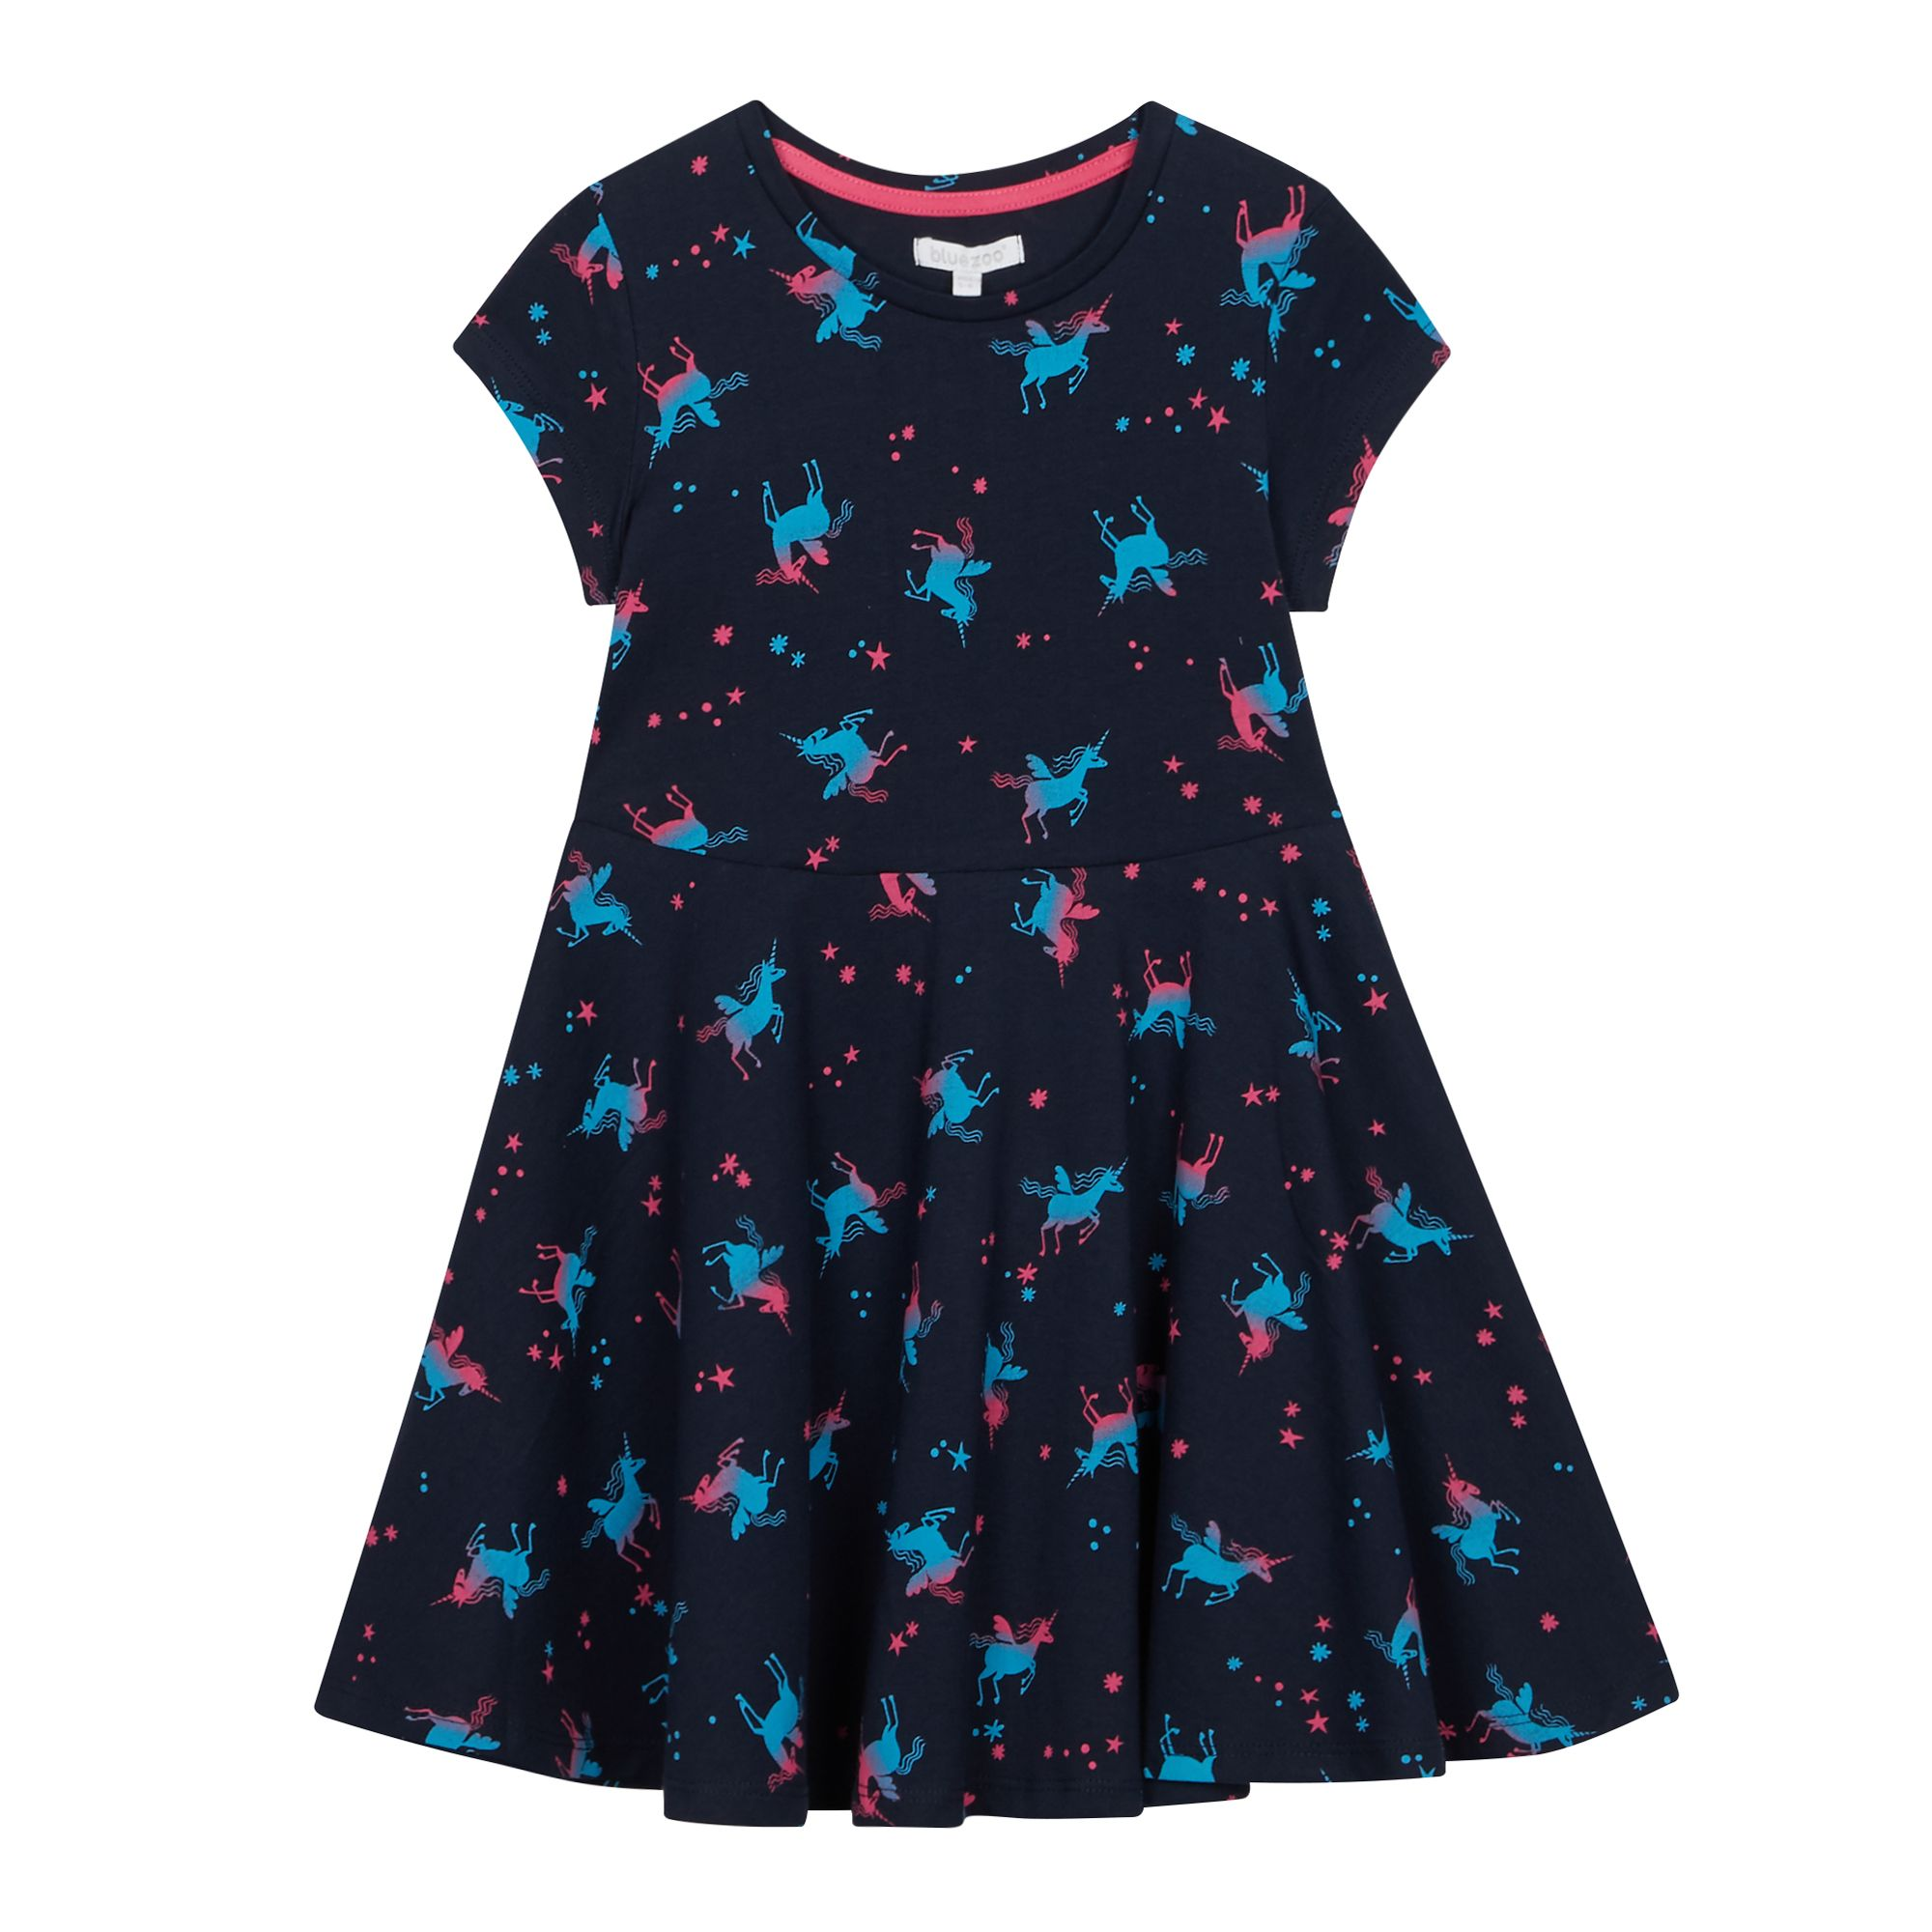 c30a452fc9 Responsive image. FREE Standard Delivery on orders over £45. Bluezoo Kids  Girls'navy Unicorn Print Dress